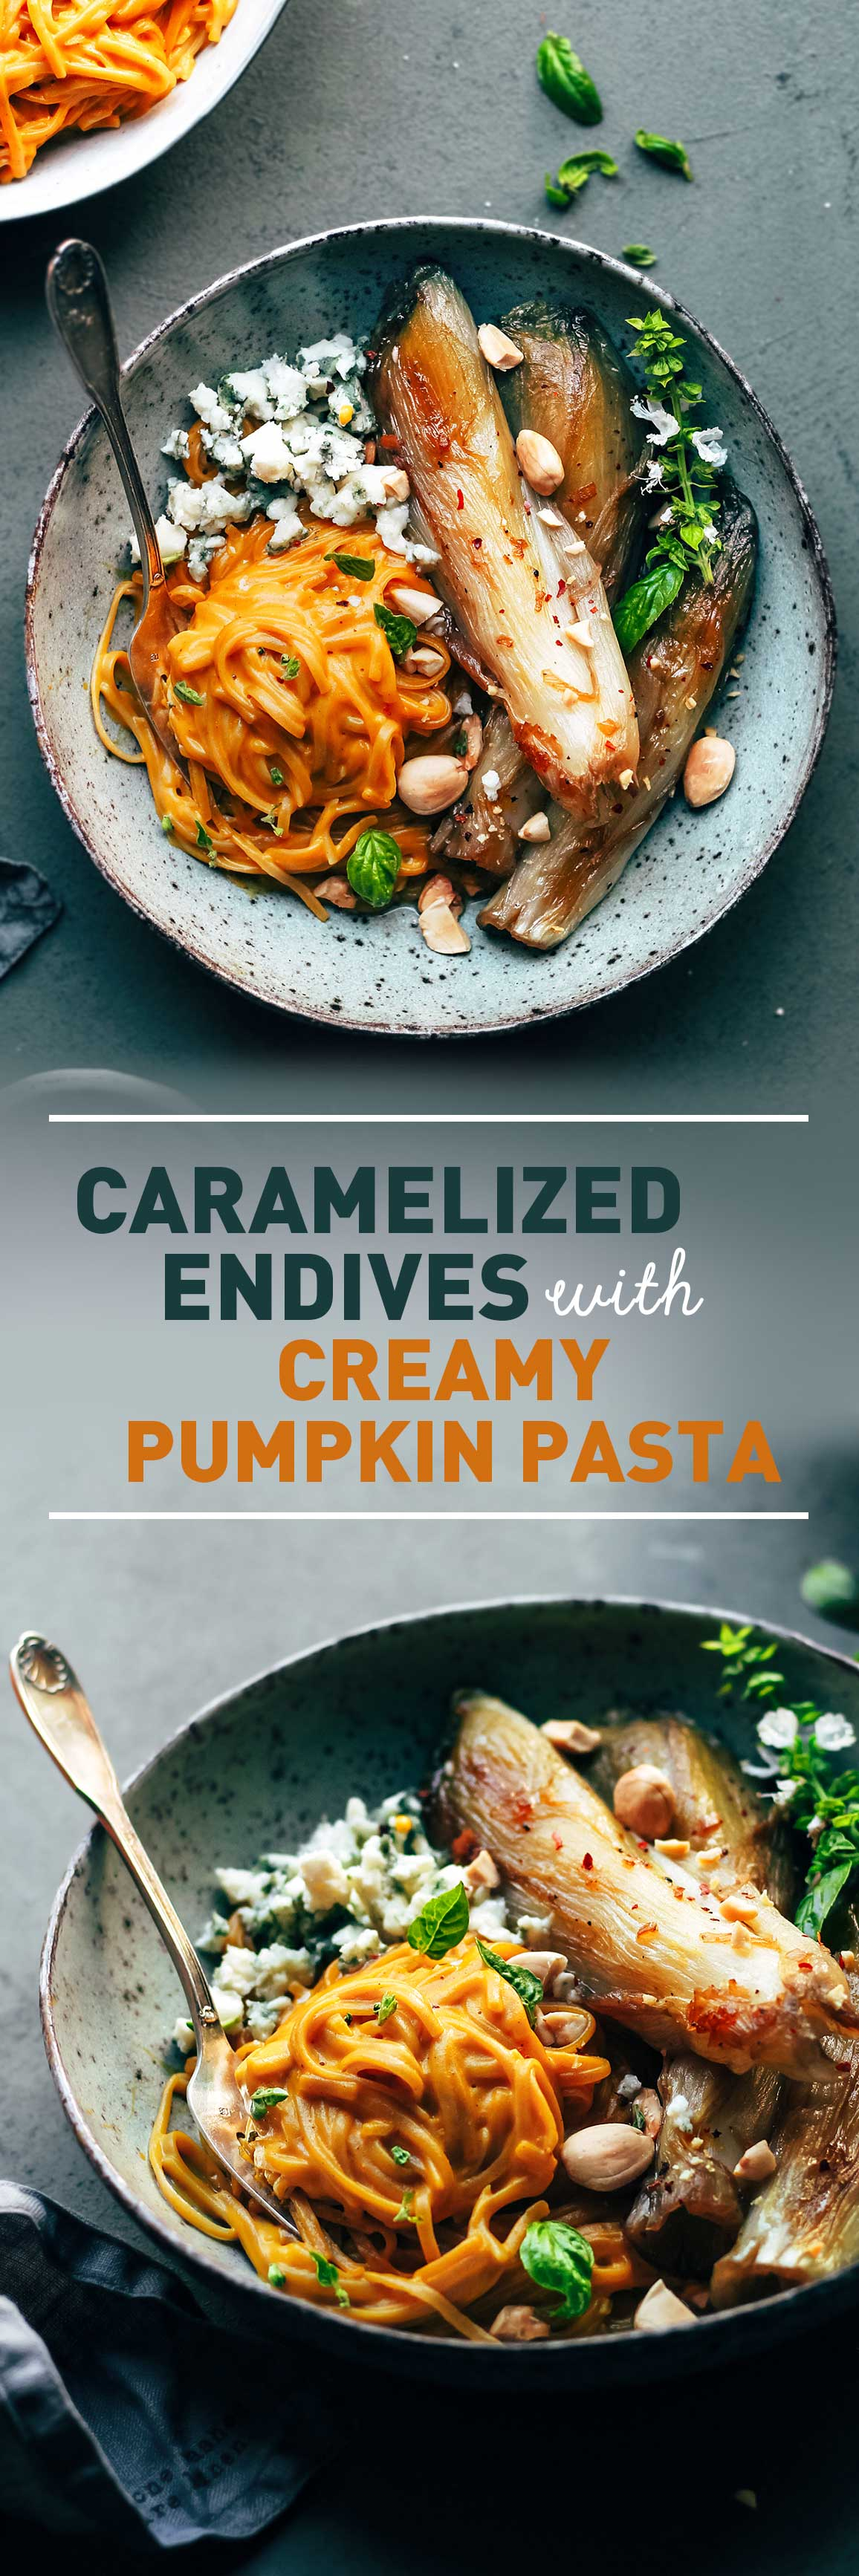 Caramelized Endives with Creamy Pumpkin Pasta